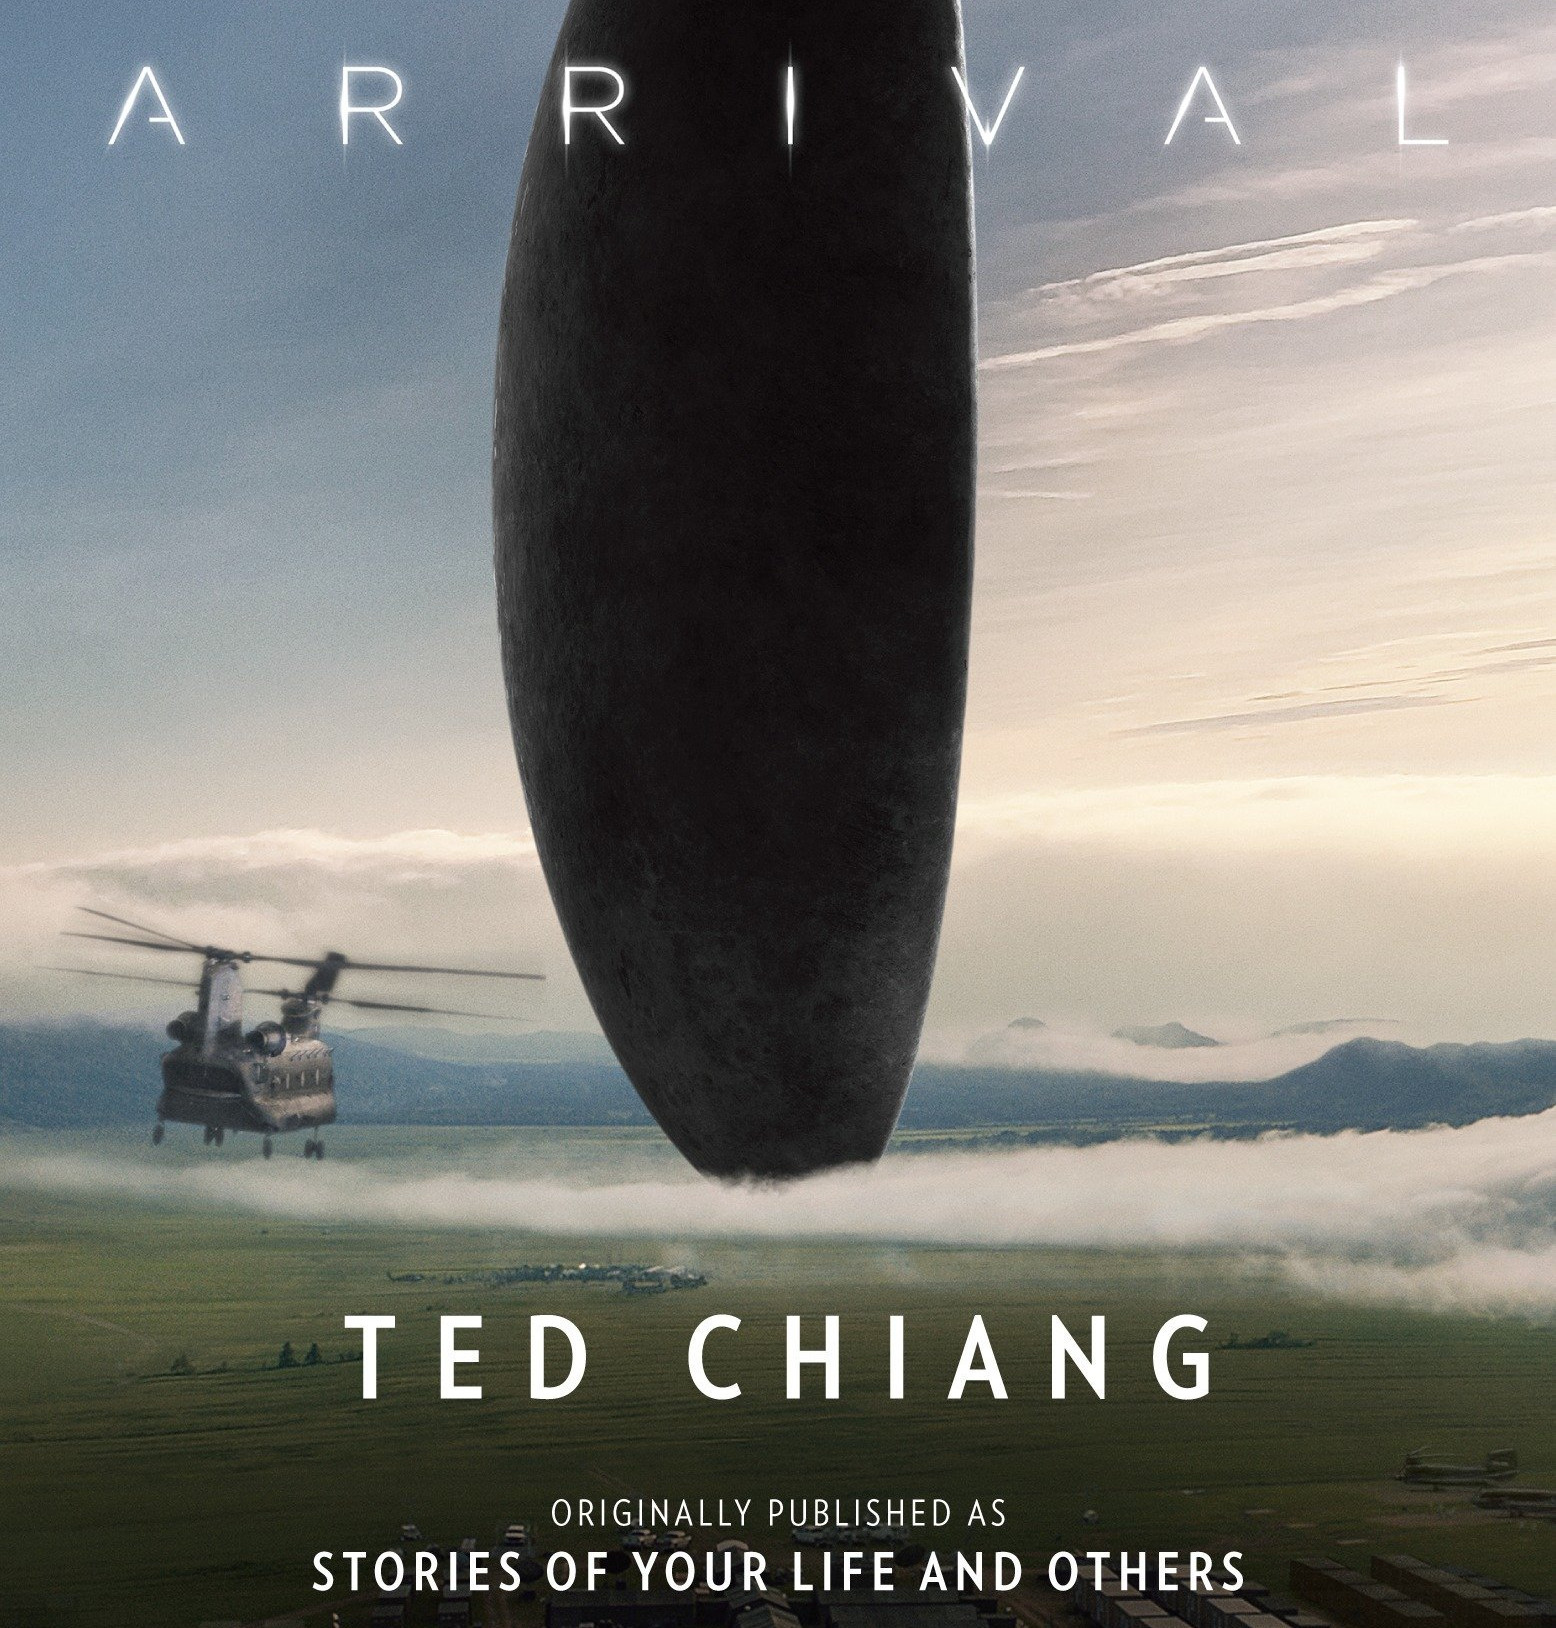 95. (December 2020) Story of Your Life / Arrival by Ted Chiang